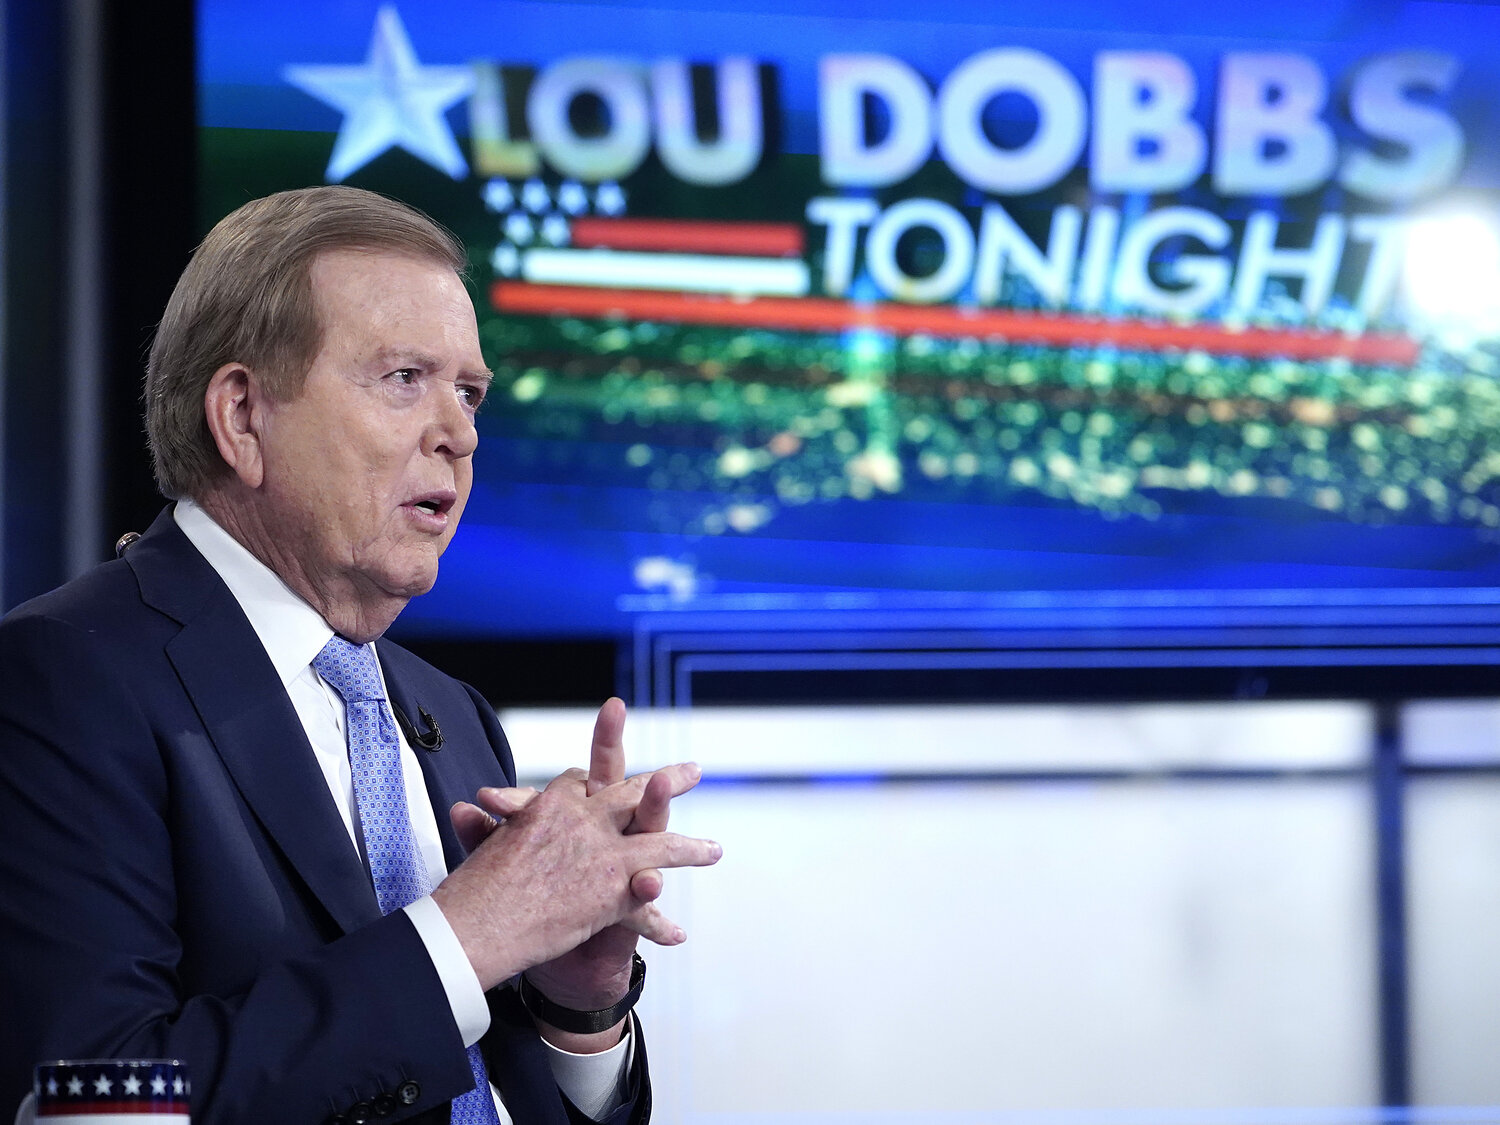 NPR - After Deadly Capitol Riot, Fox News Stays Silent On Stars' Incendiary Rhetoric